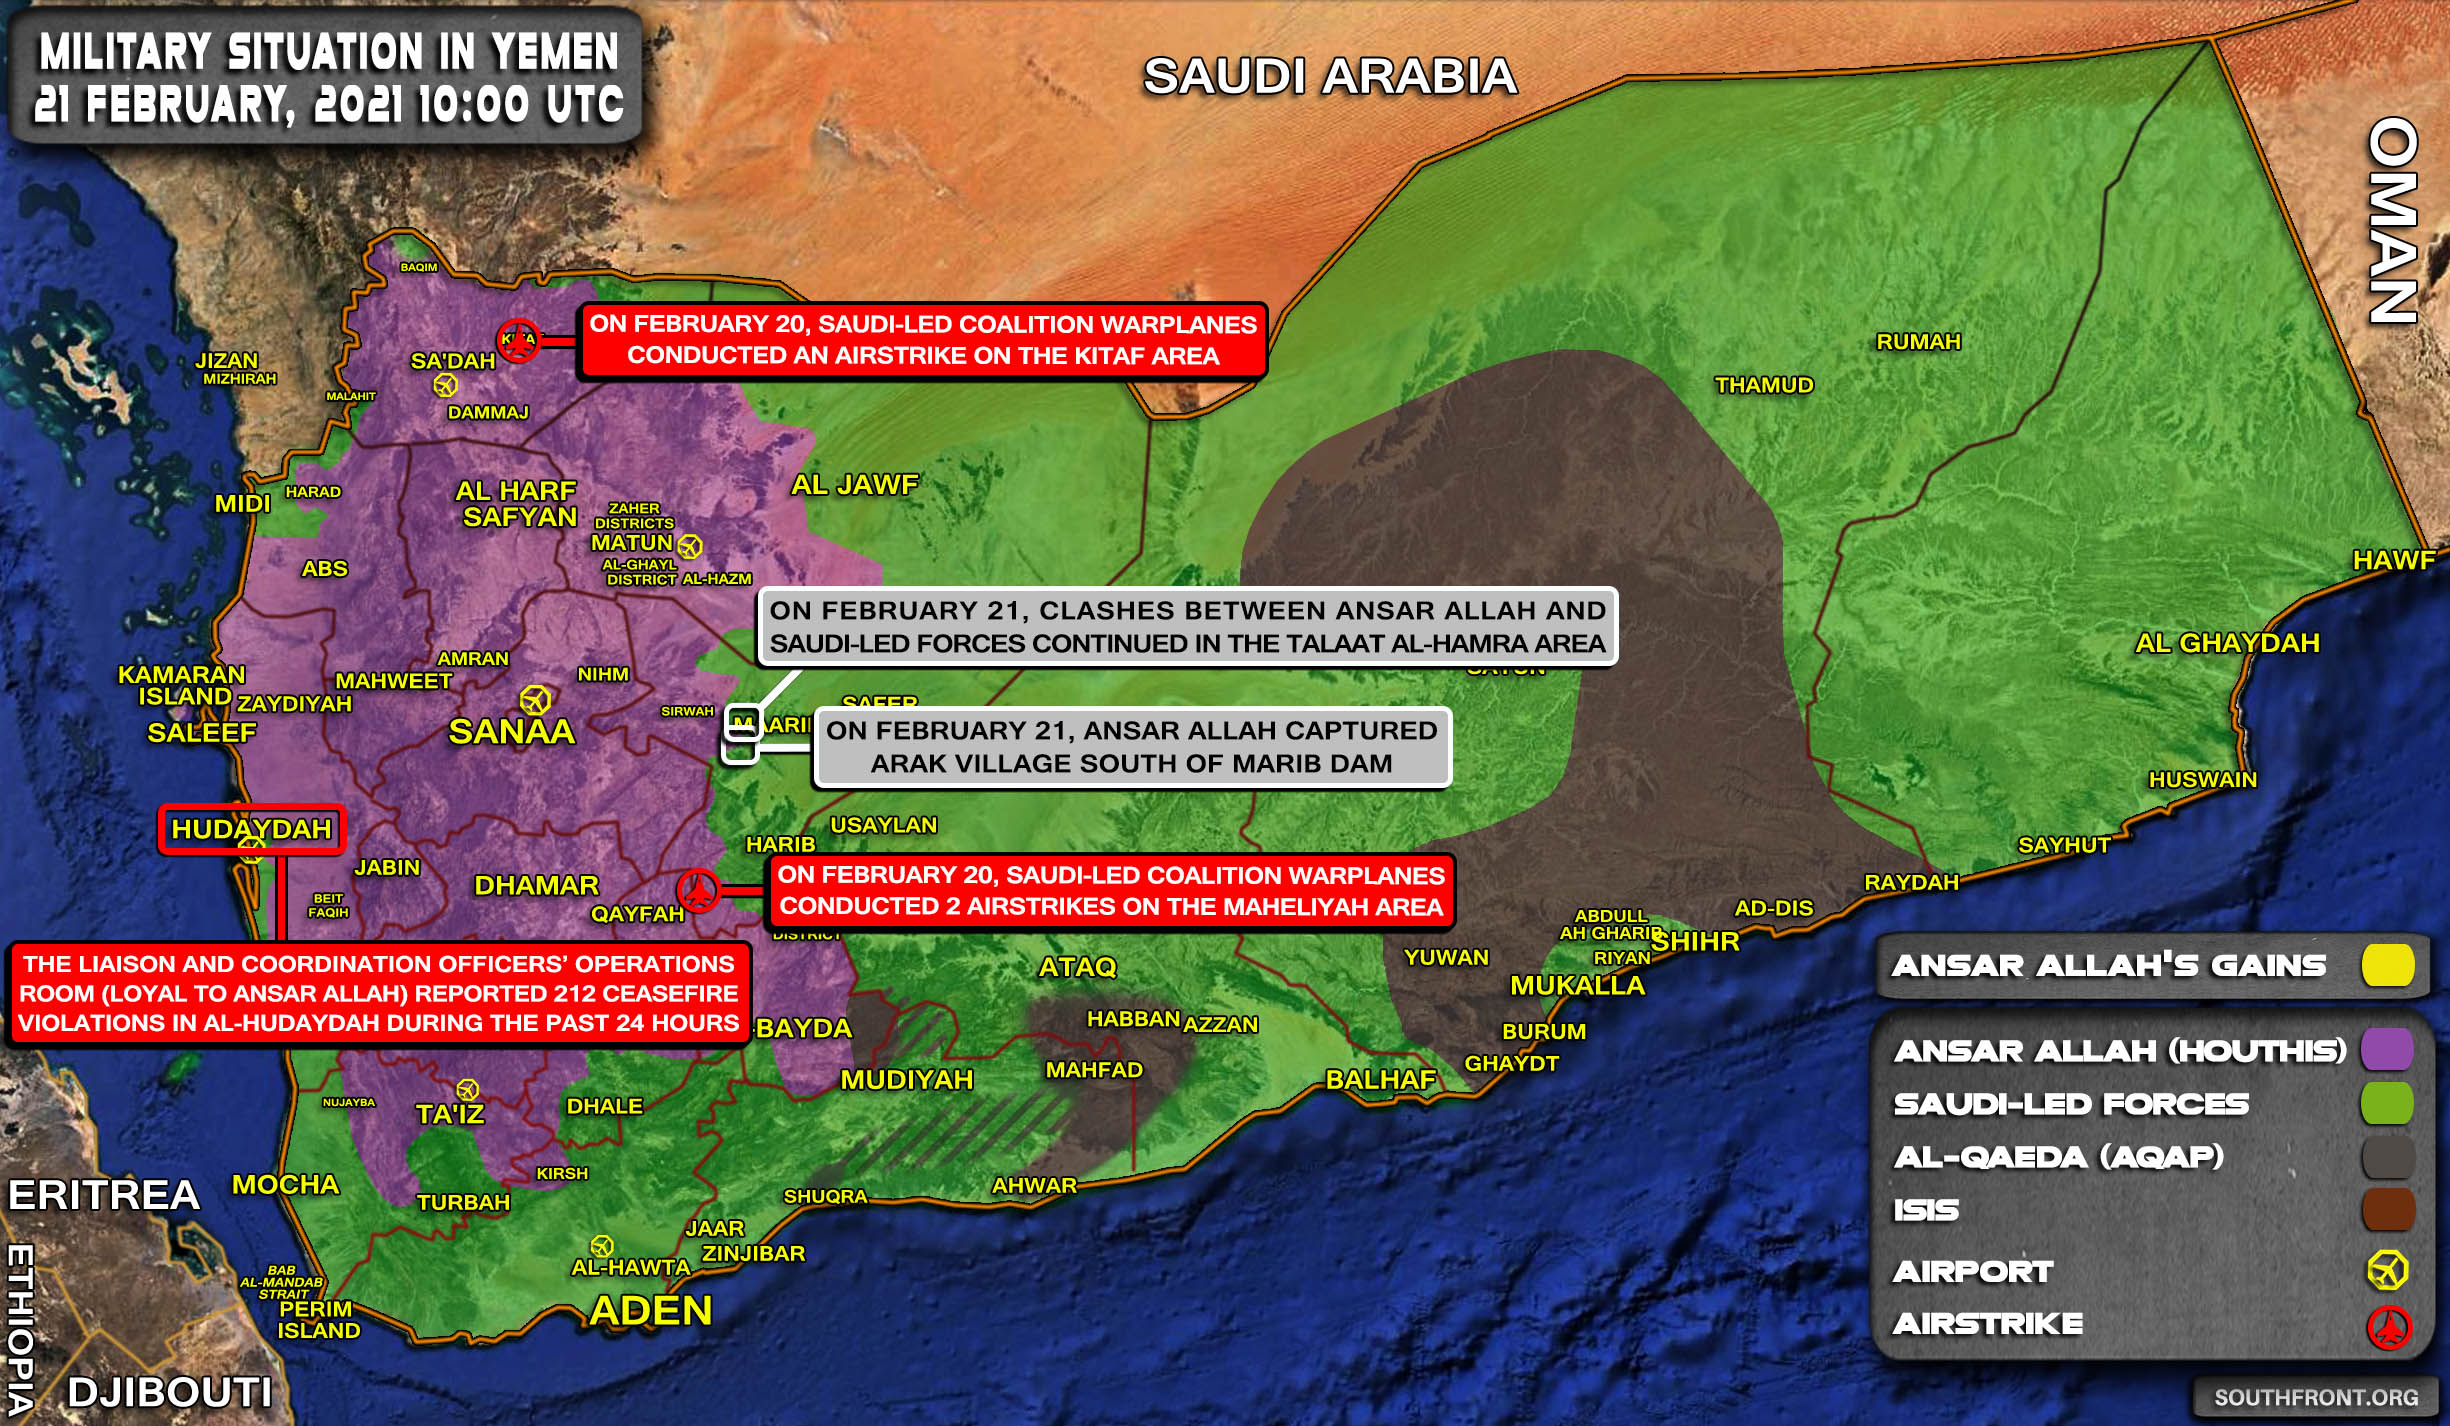 Houthis Capture Village Near Marib Dam, Potentially Prepare For New Offensive (Map Update)